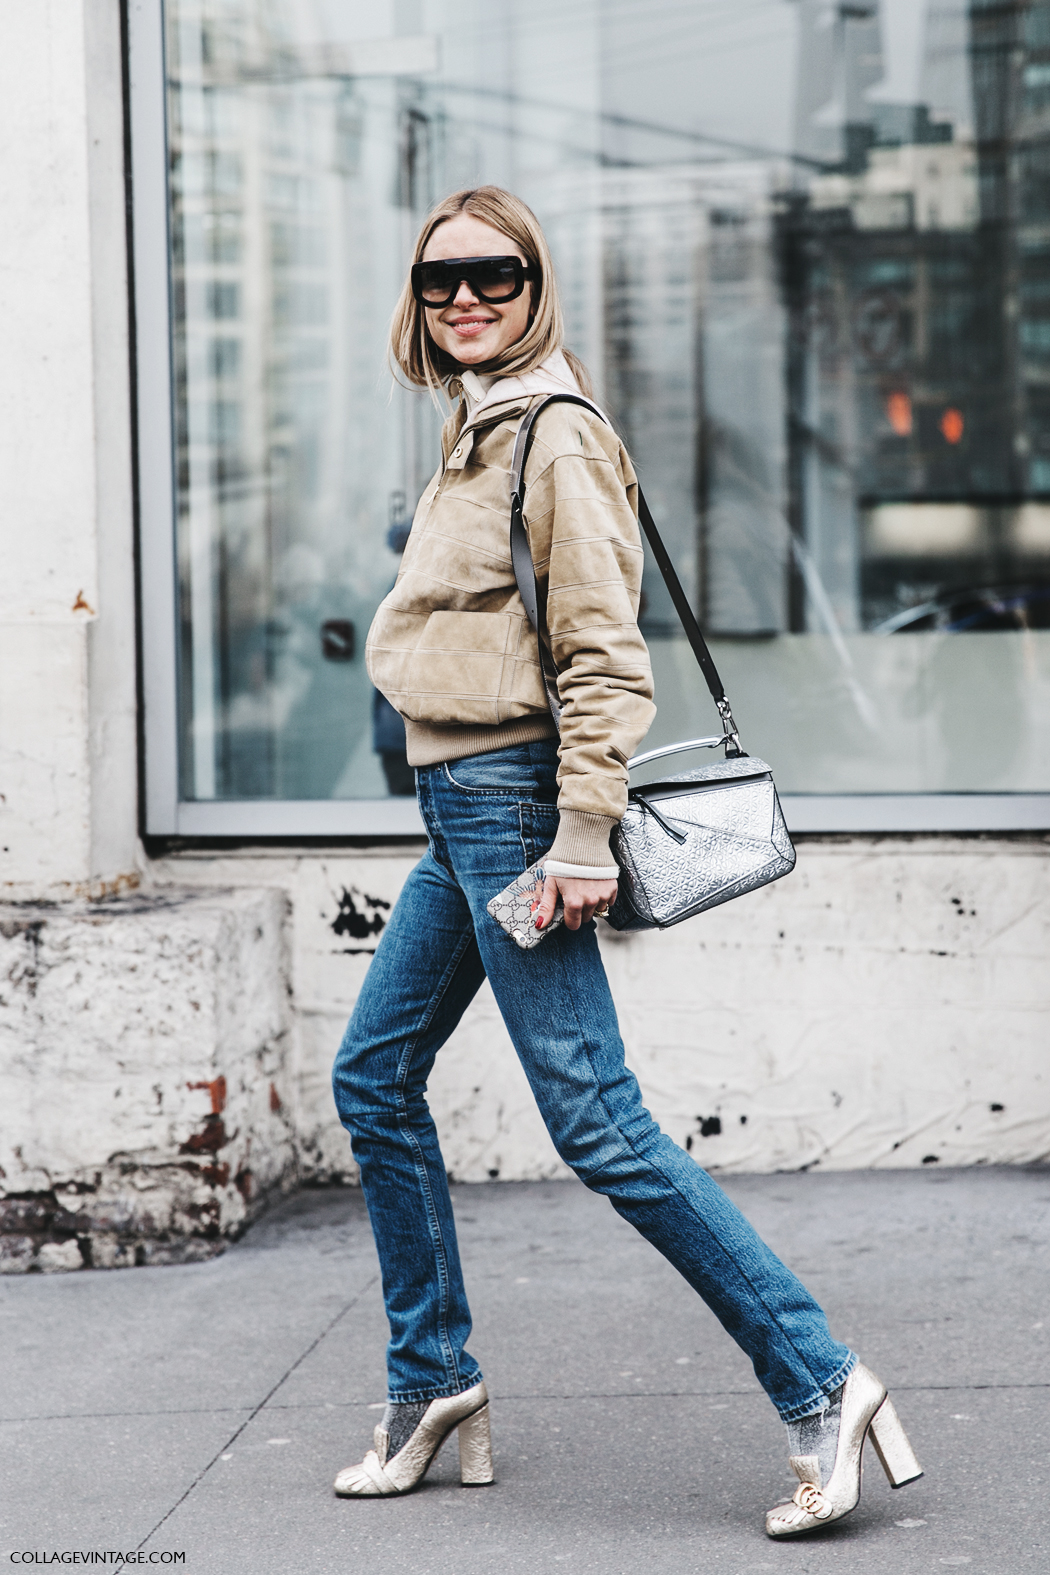 NYFW-New_York_Fashion_Week-Fall_Winter-17-Street_Style-Look_De_Pernille-Suede_Bomber-Loewe_Glitter_Bag-Gucci_Shoes-1